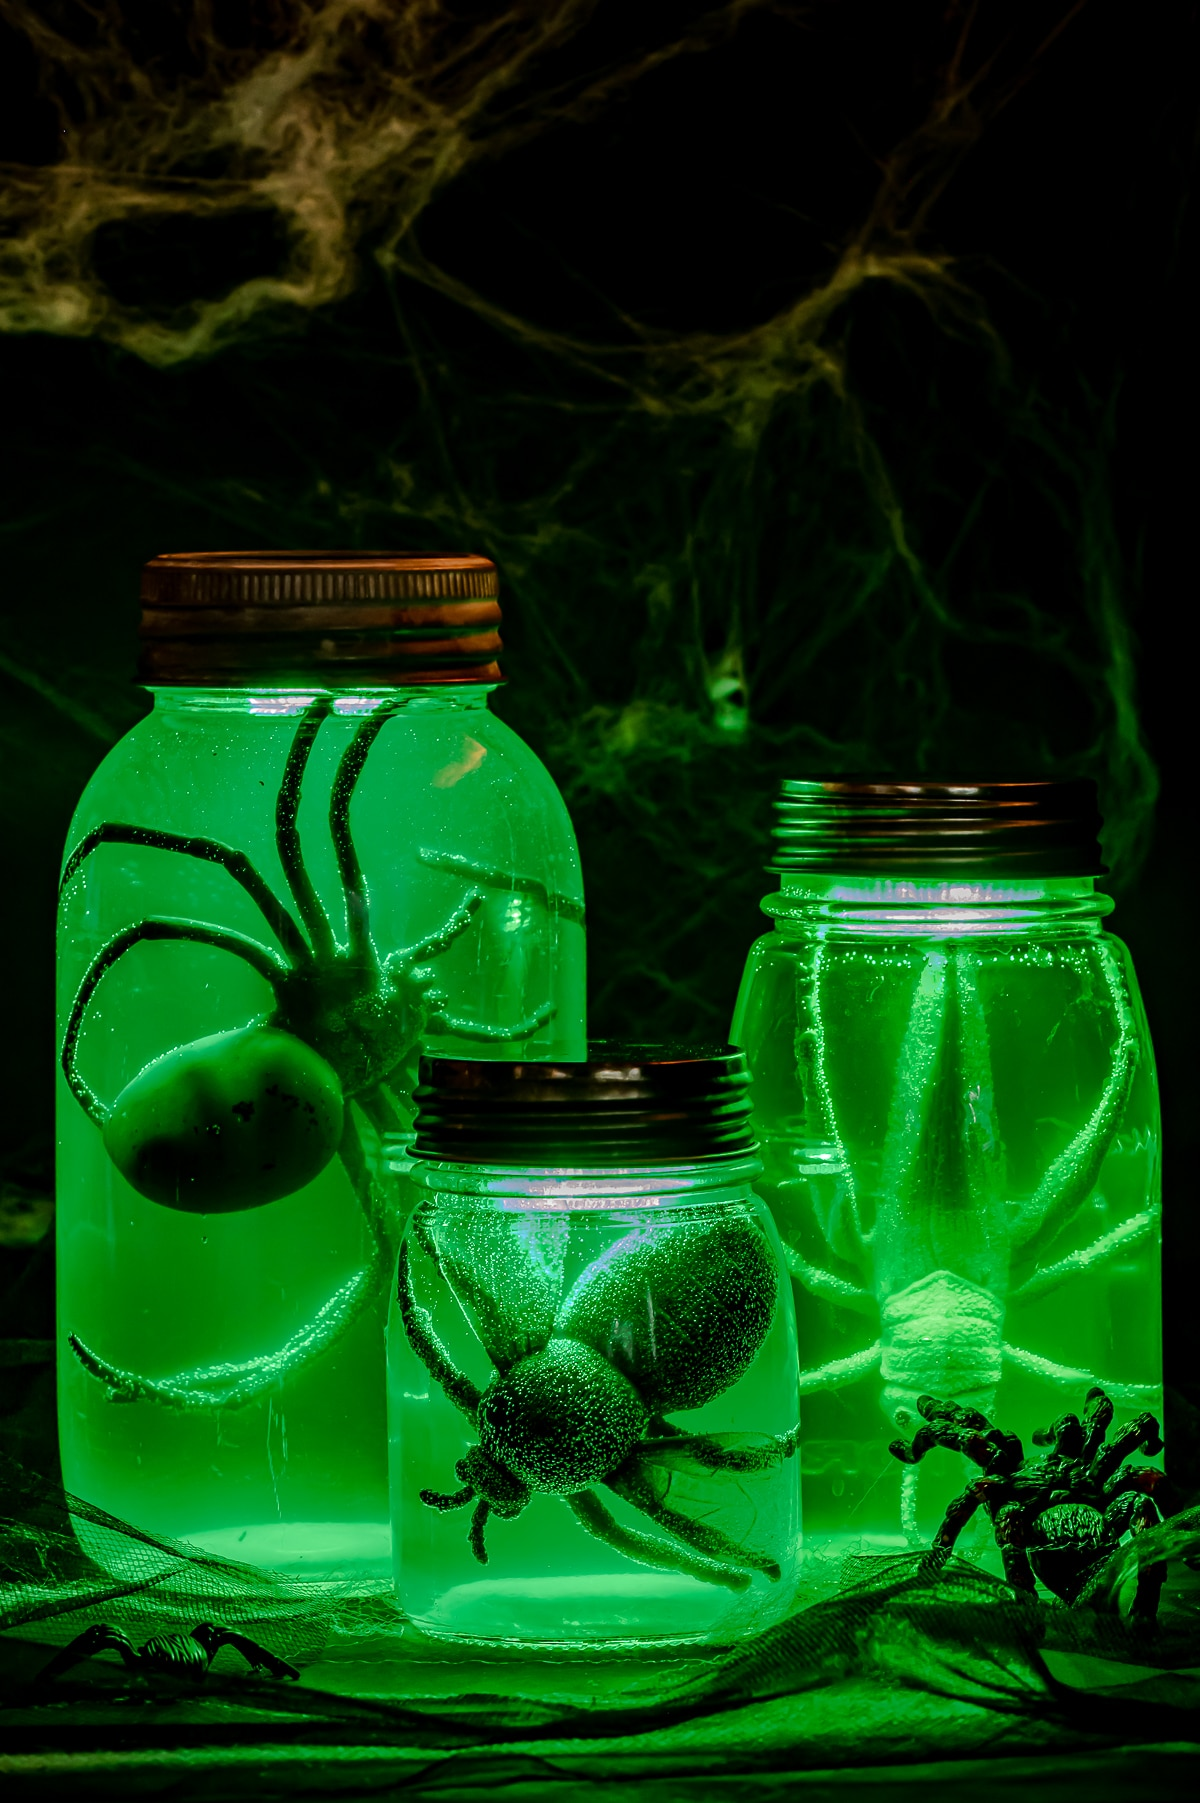 Three halloween specimen jars filled with a plastic giant fly and large fake grasshopper. The jars are glowing an eerie murky green color.